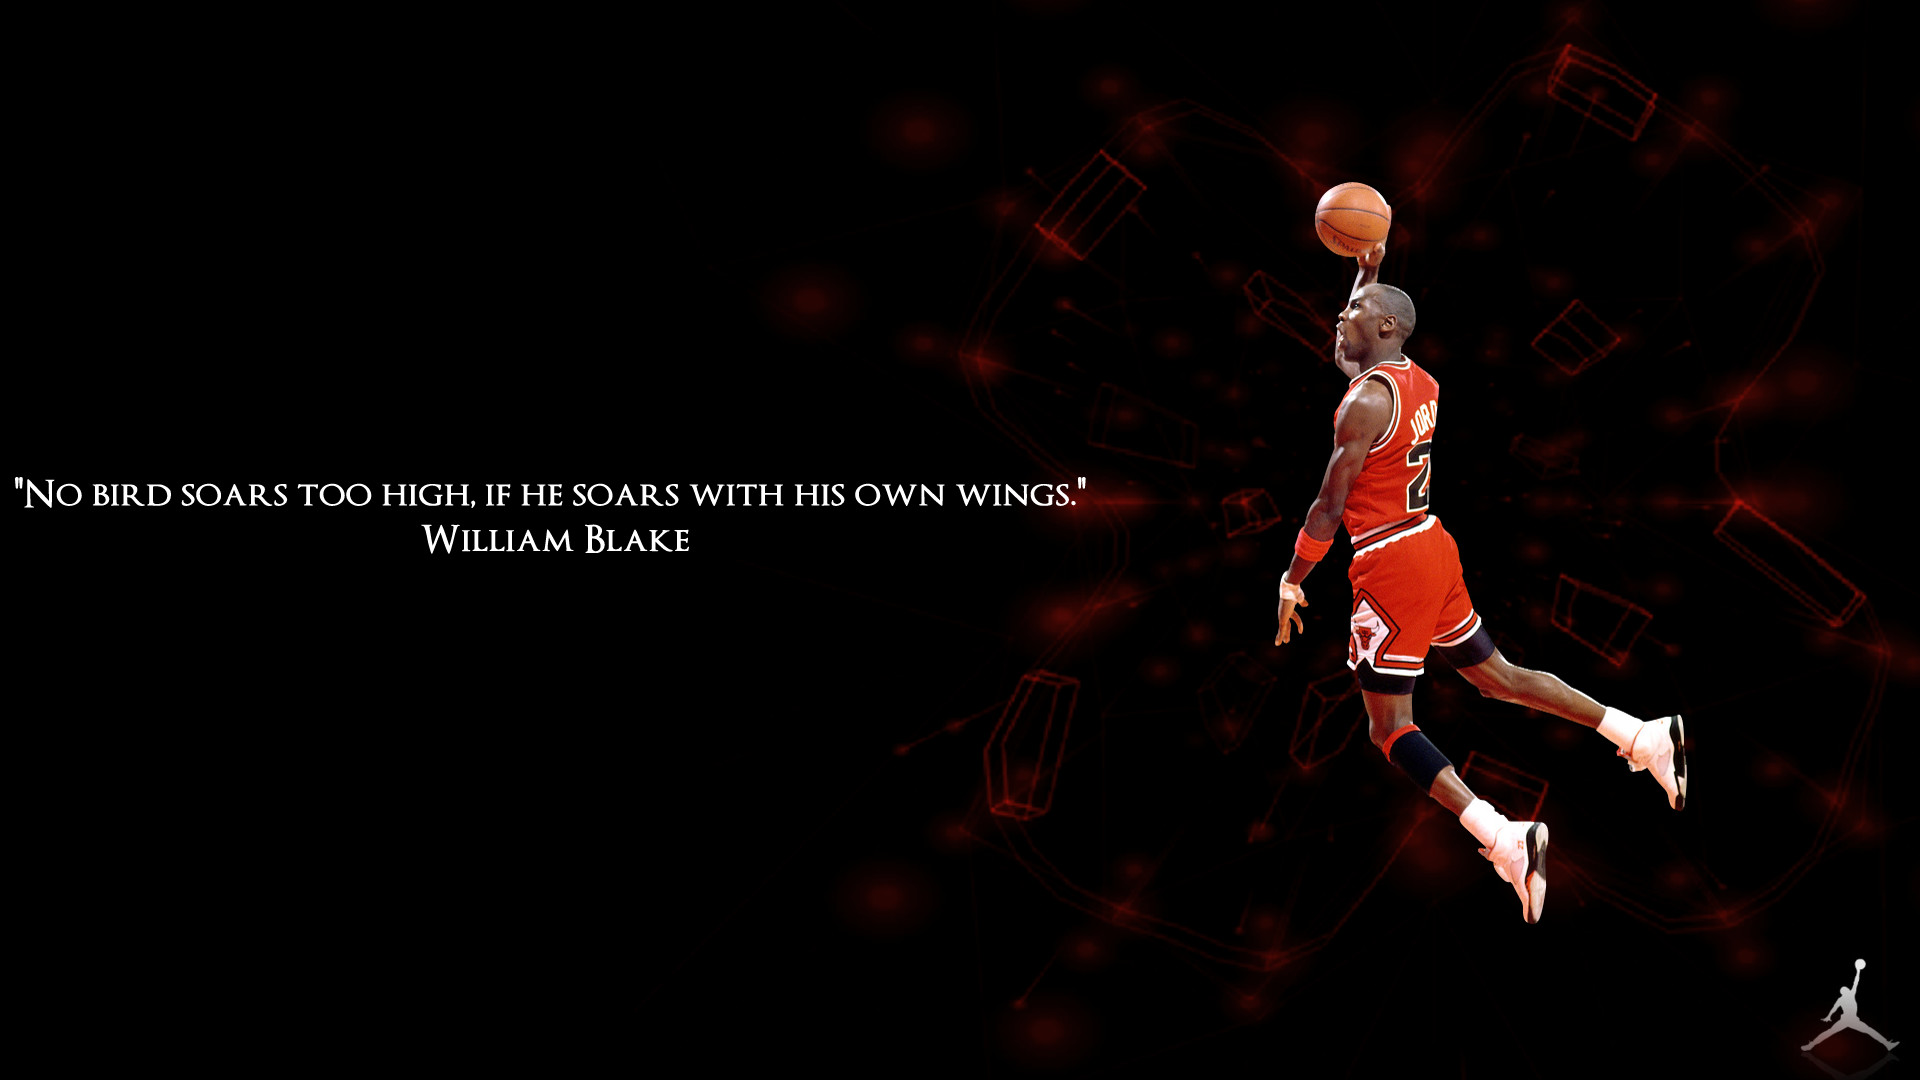 1920x1080 William-Blake-Basketball-Quotes-Pictures-1920×1080-wallpaper-